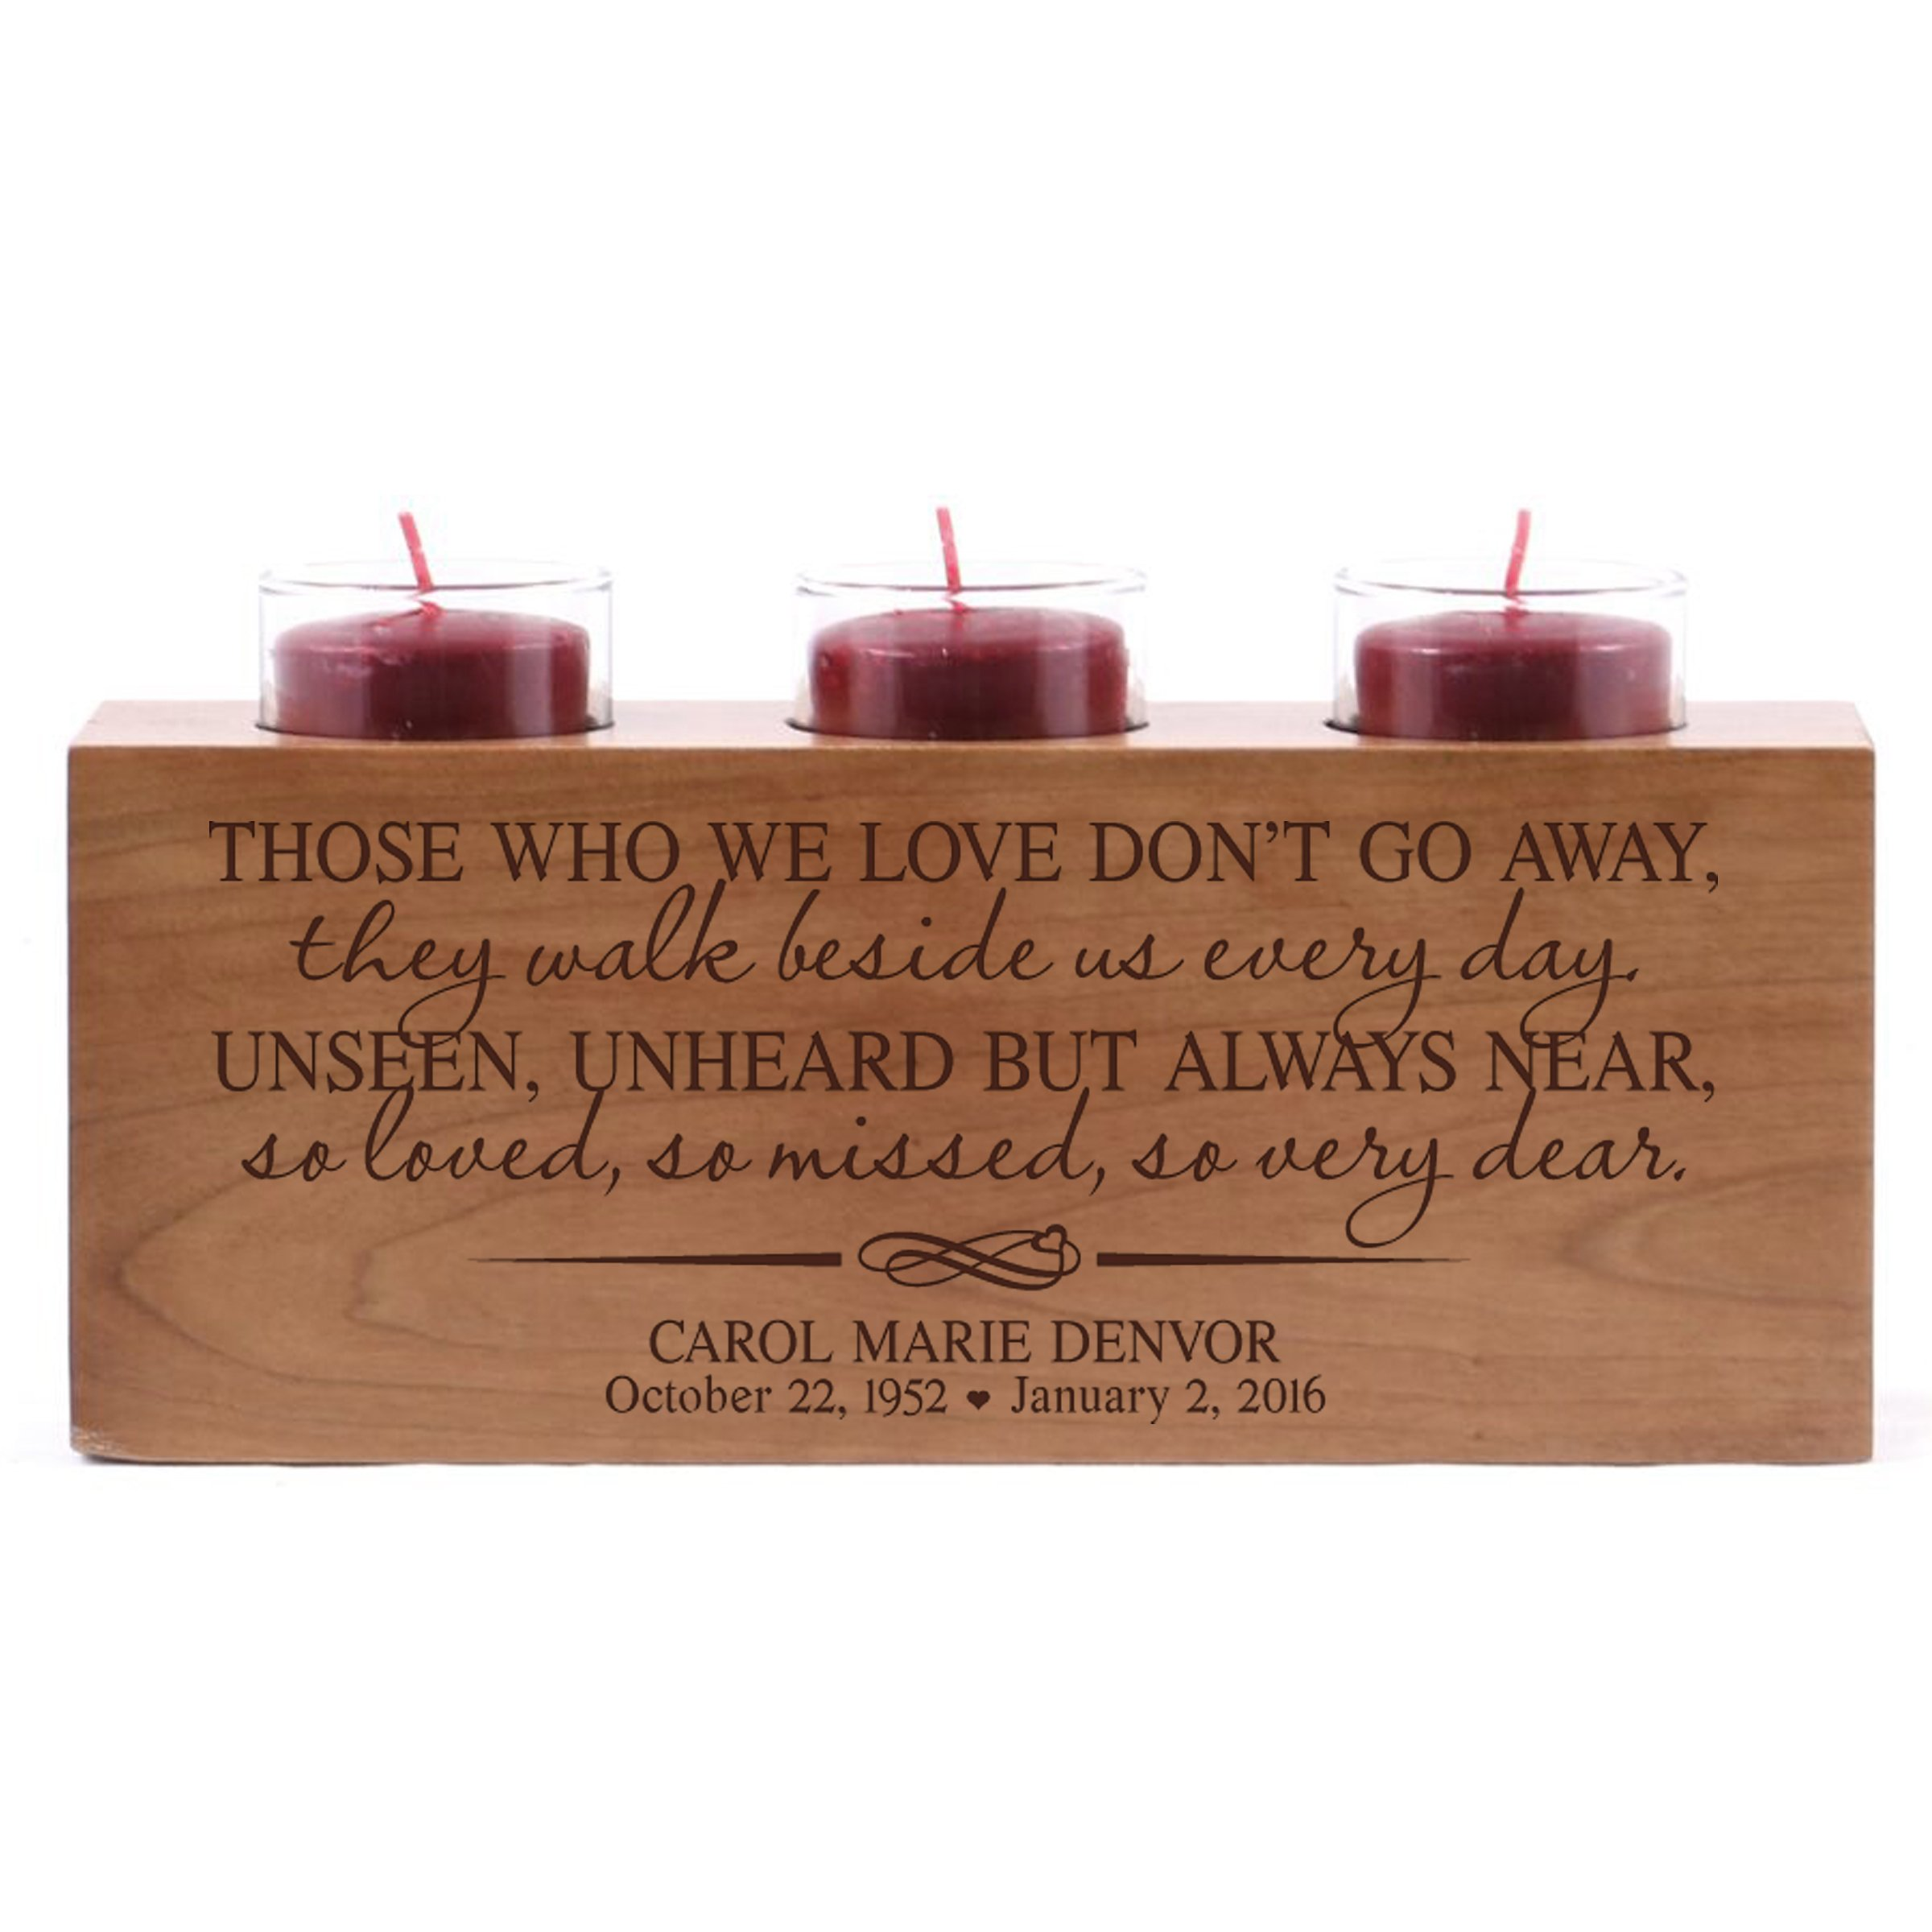 Personalized Those Who We Love Don't Go Away Memorial Sympathy Candle Holder Custom Engraved Cherry Wood Keepsake Ideas for Loved One 10'' L x 4'' H by LifeSong Milestones (Those We Love) by LifeSong Milestones